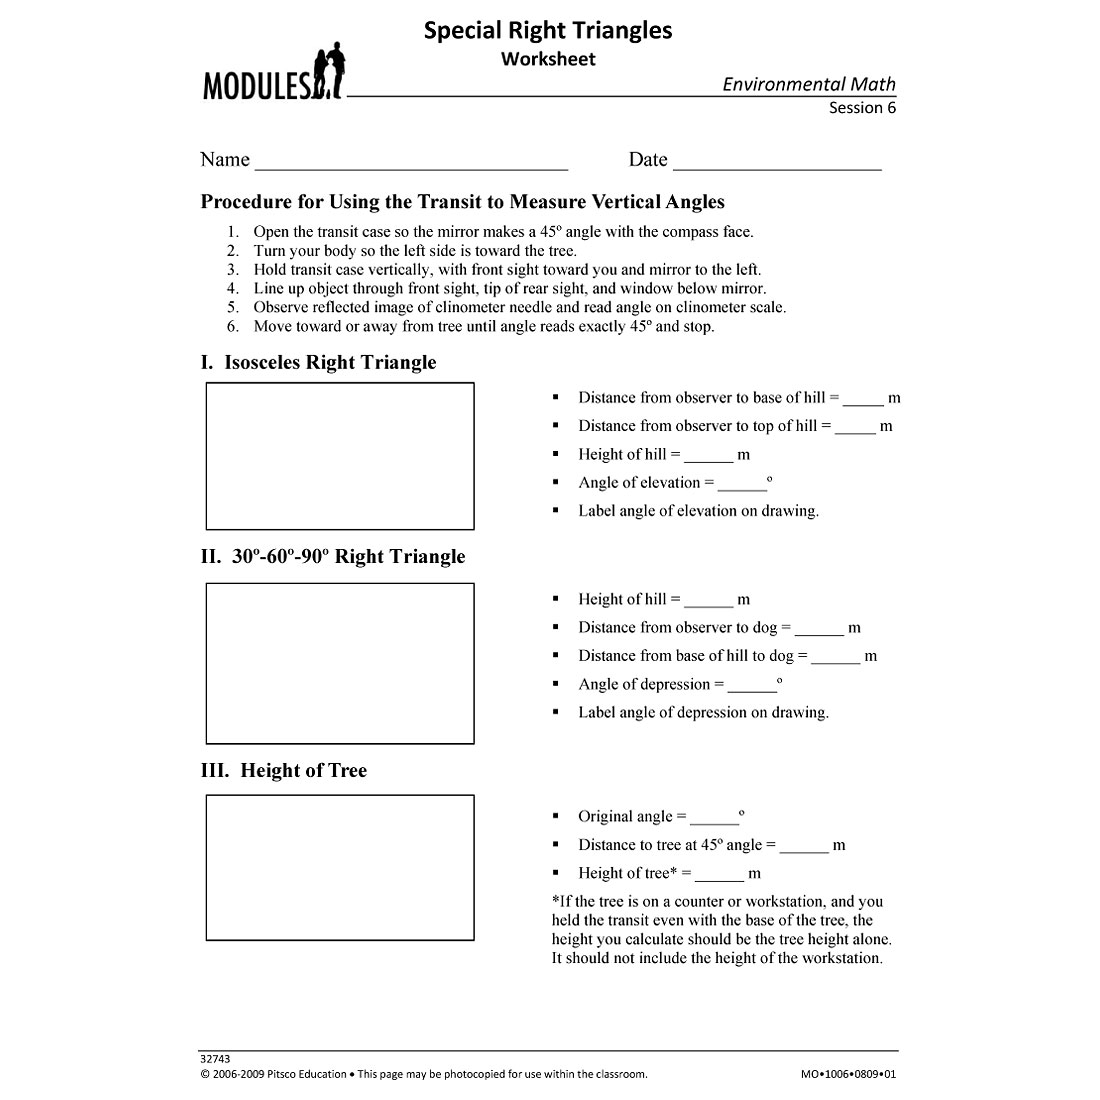 special right triangles worksheet w32743. Black Bedroom Furniture Sets. Home Design Ideas